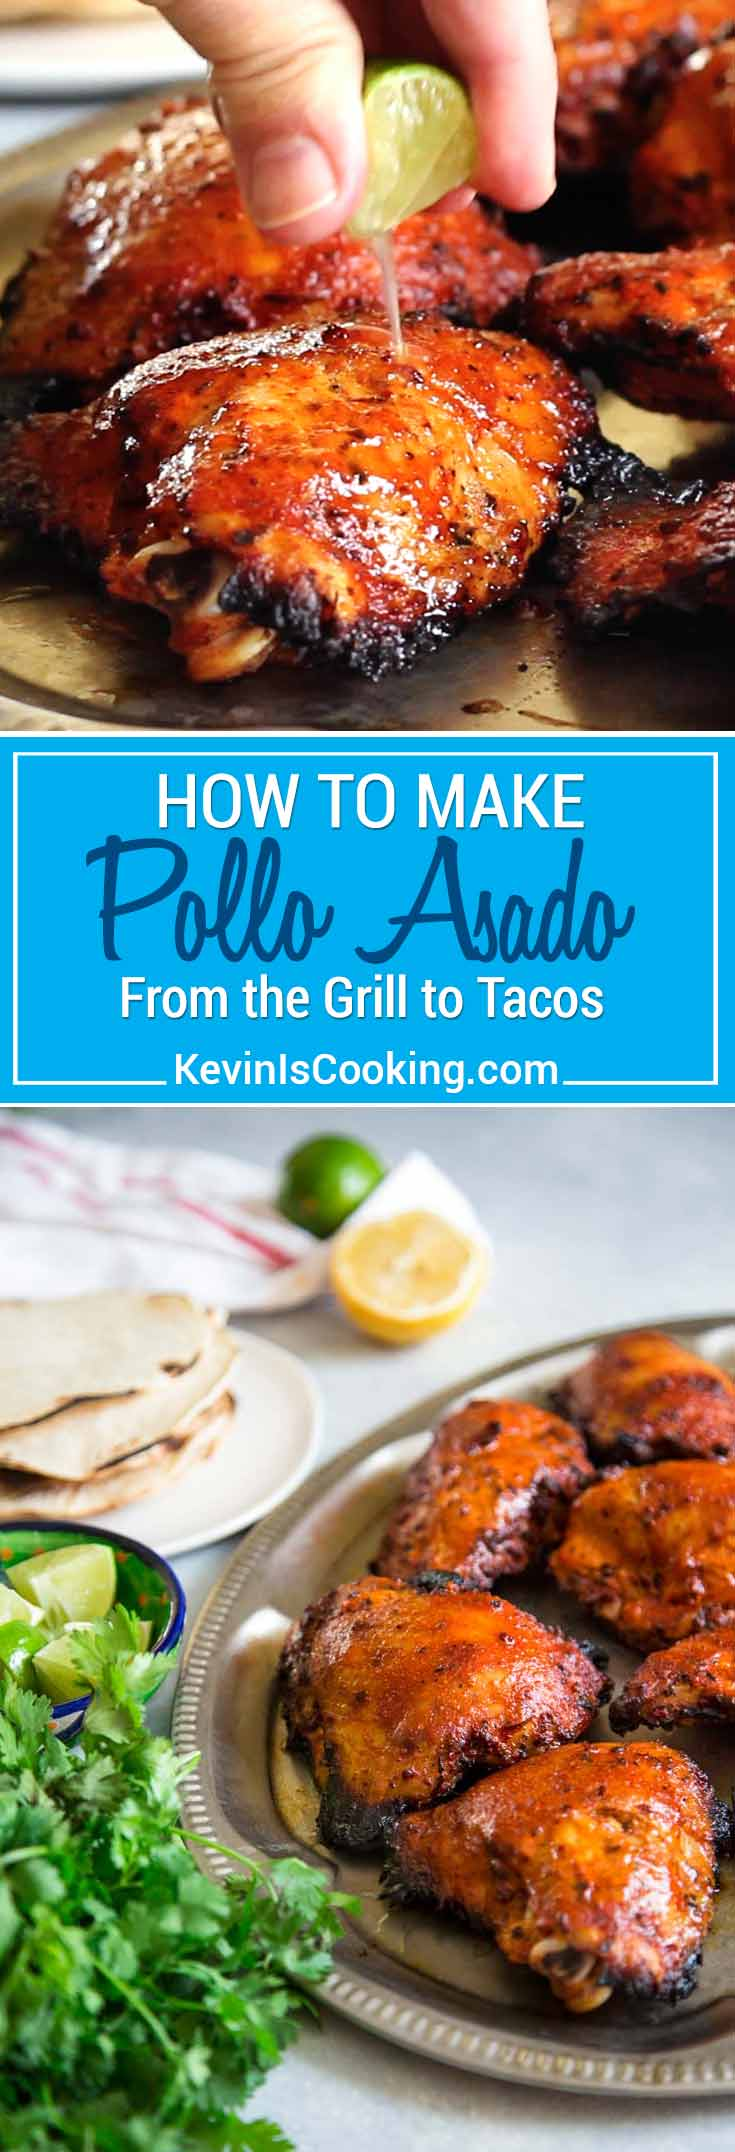 My take on How To Make Pollo Asado starts with marinating chicken in orange and lime juice, oregano, cumin, garlic and achiote paste overnight. Grill & eat!